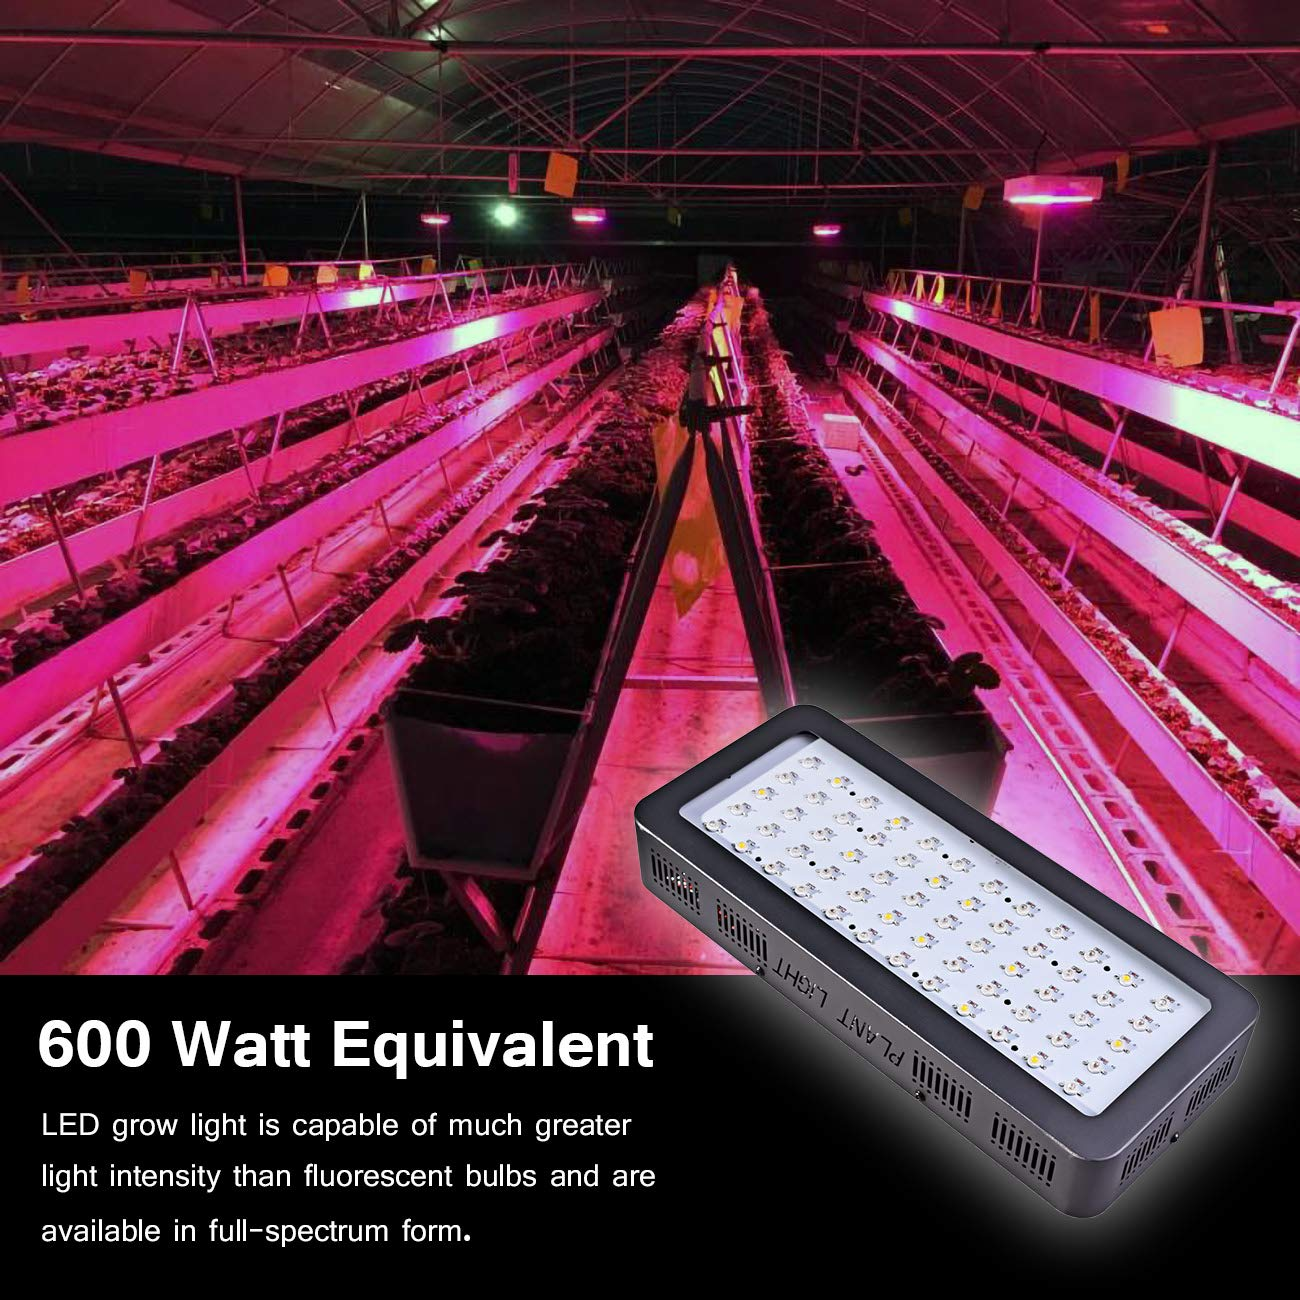 Golspark Indoor LED Grow Light, 600 Watt Full Spectrum Plant Light with Switch, IR&UV Growing Lamp Kits for Greenhouse Hydroponic Seedling Veg and Flower by Golspark (Image #8)